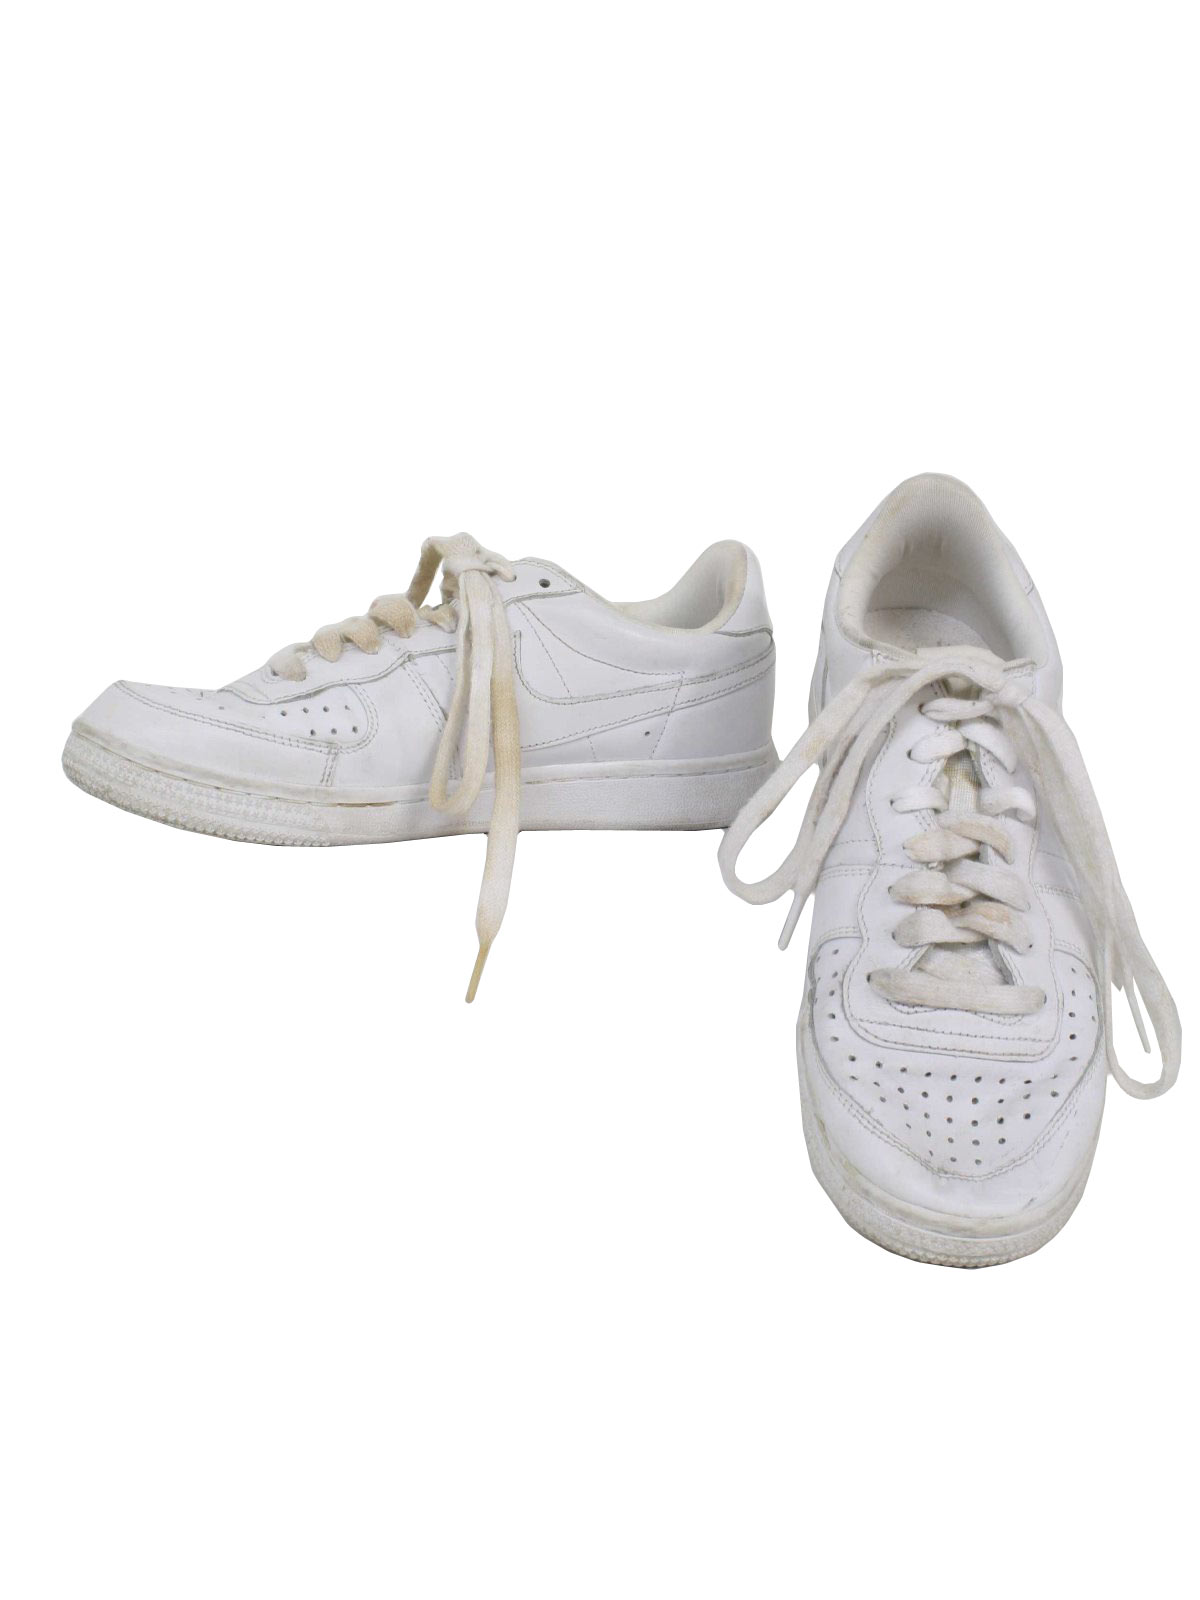 44a524b69c2f Nike 90 s Vintage Shoes  90s -Nike- Womens white on white swoosh ...